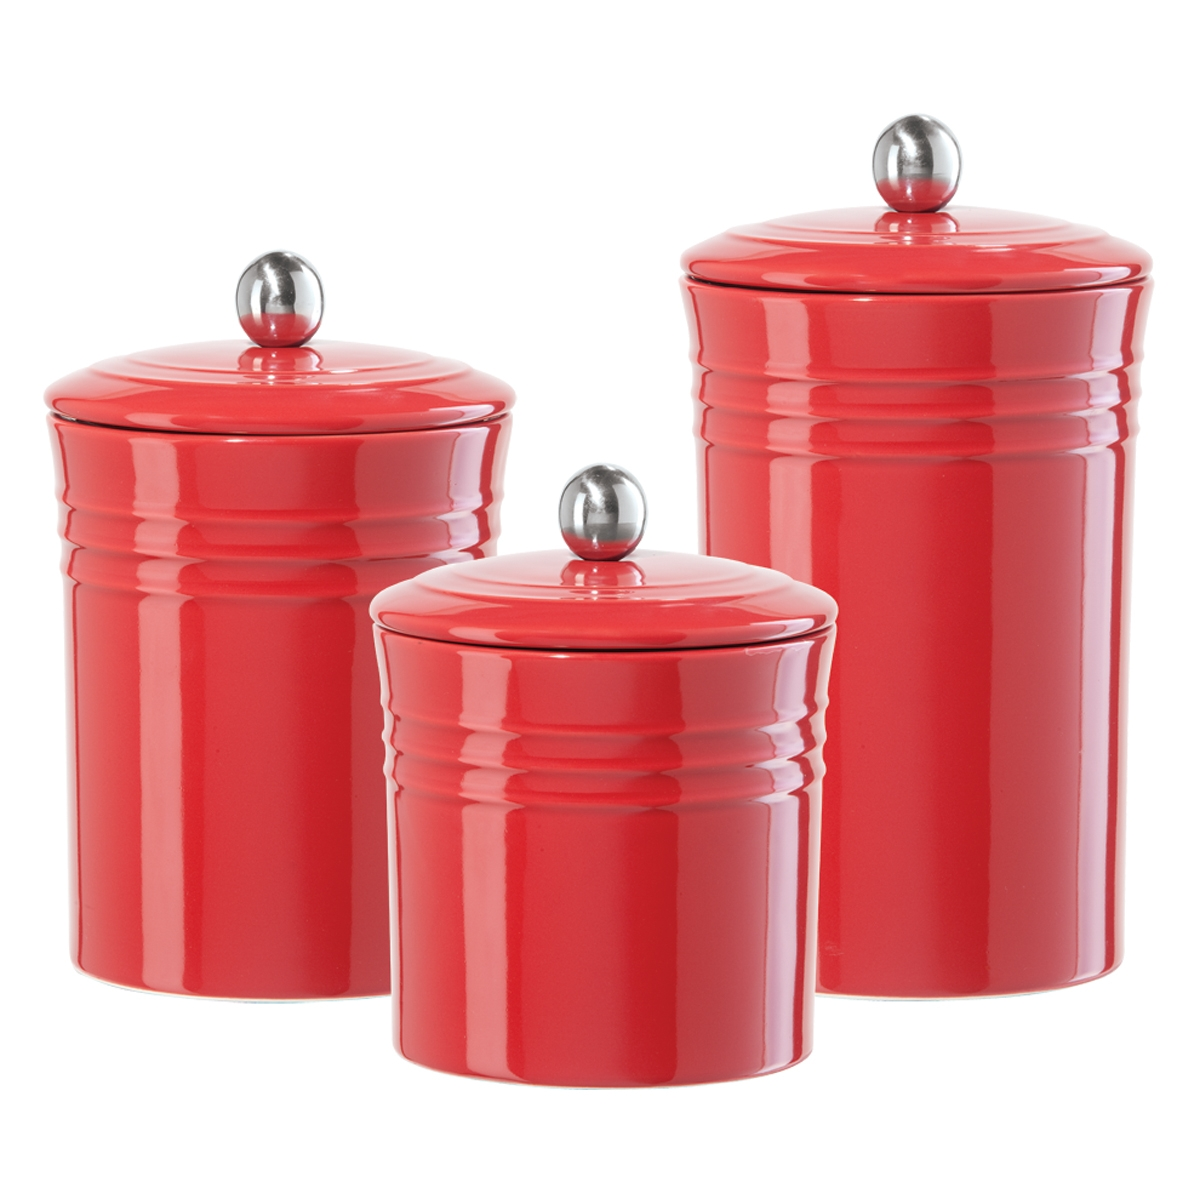 kitchen containers single bowl cast iron sink gift and home today storage canisters for the